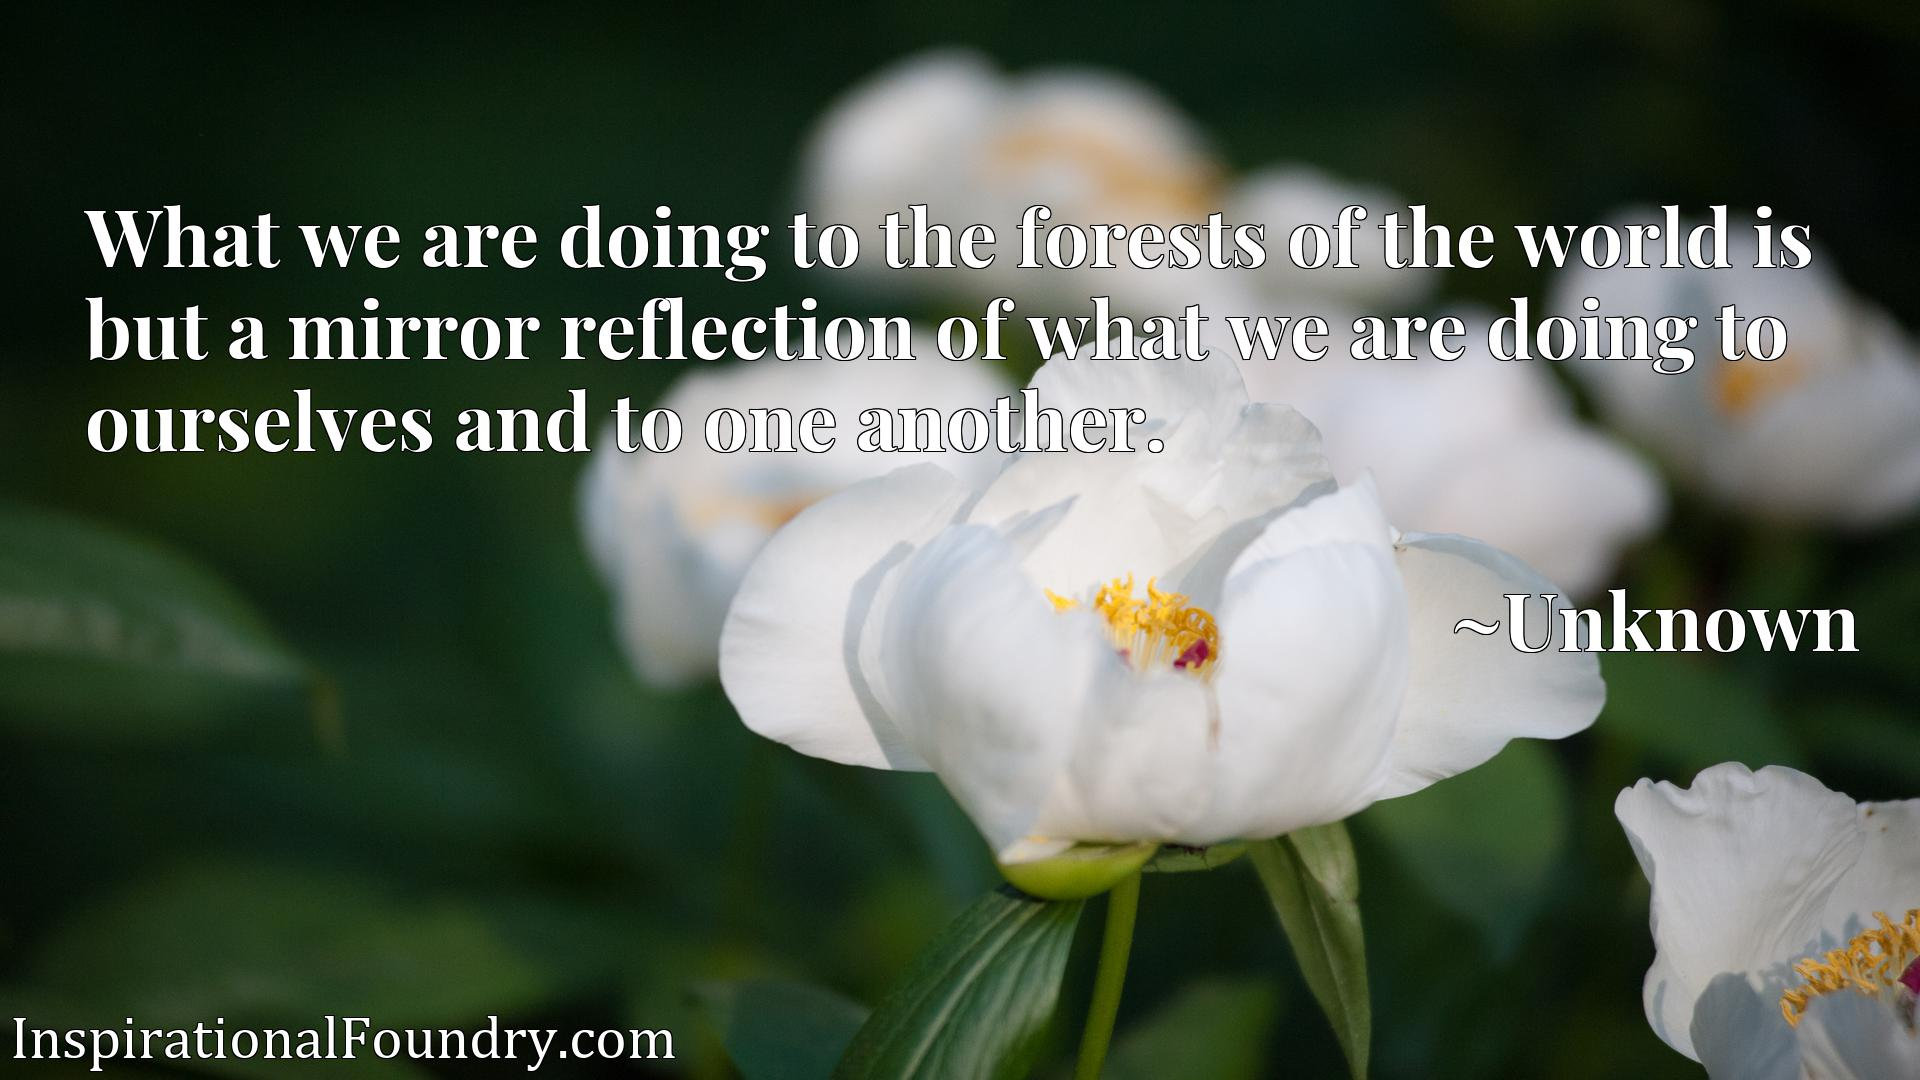 Quote Picture :What we are doing to the forests of the world is but a mirror reflection of what we are doing to ourselves and to one another.